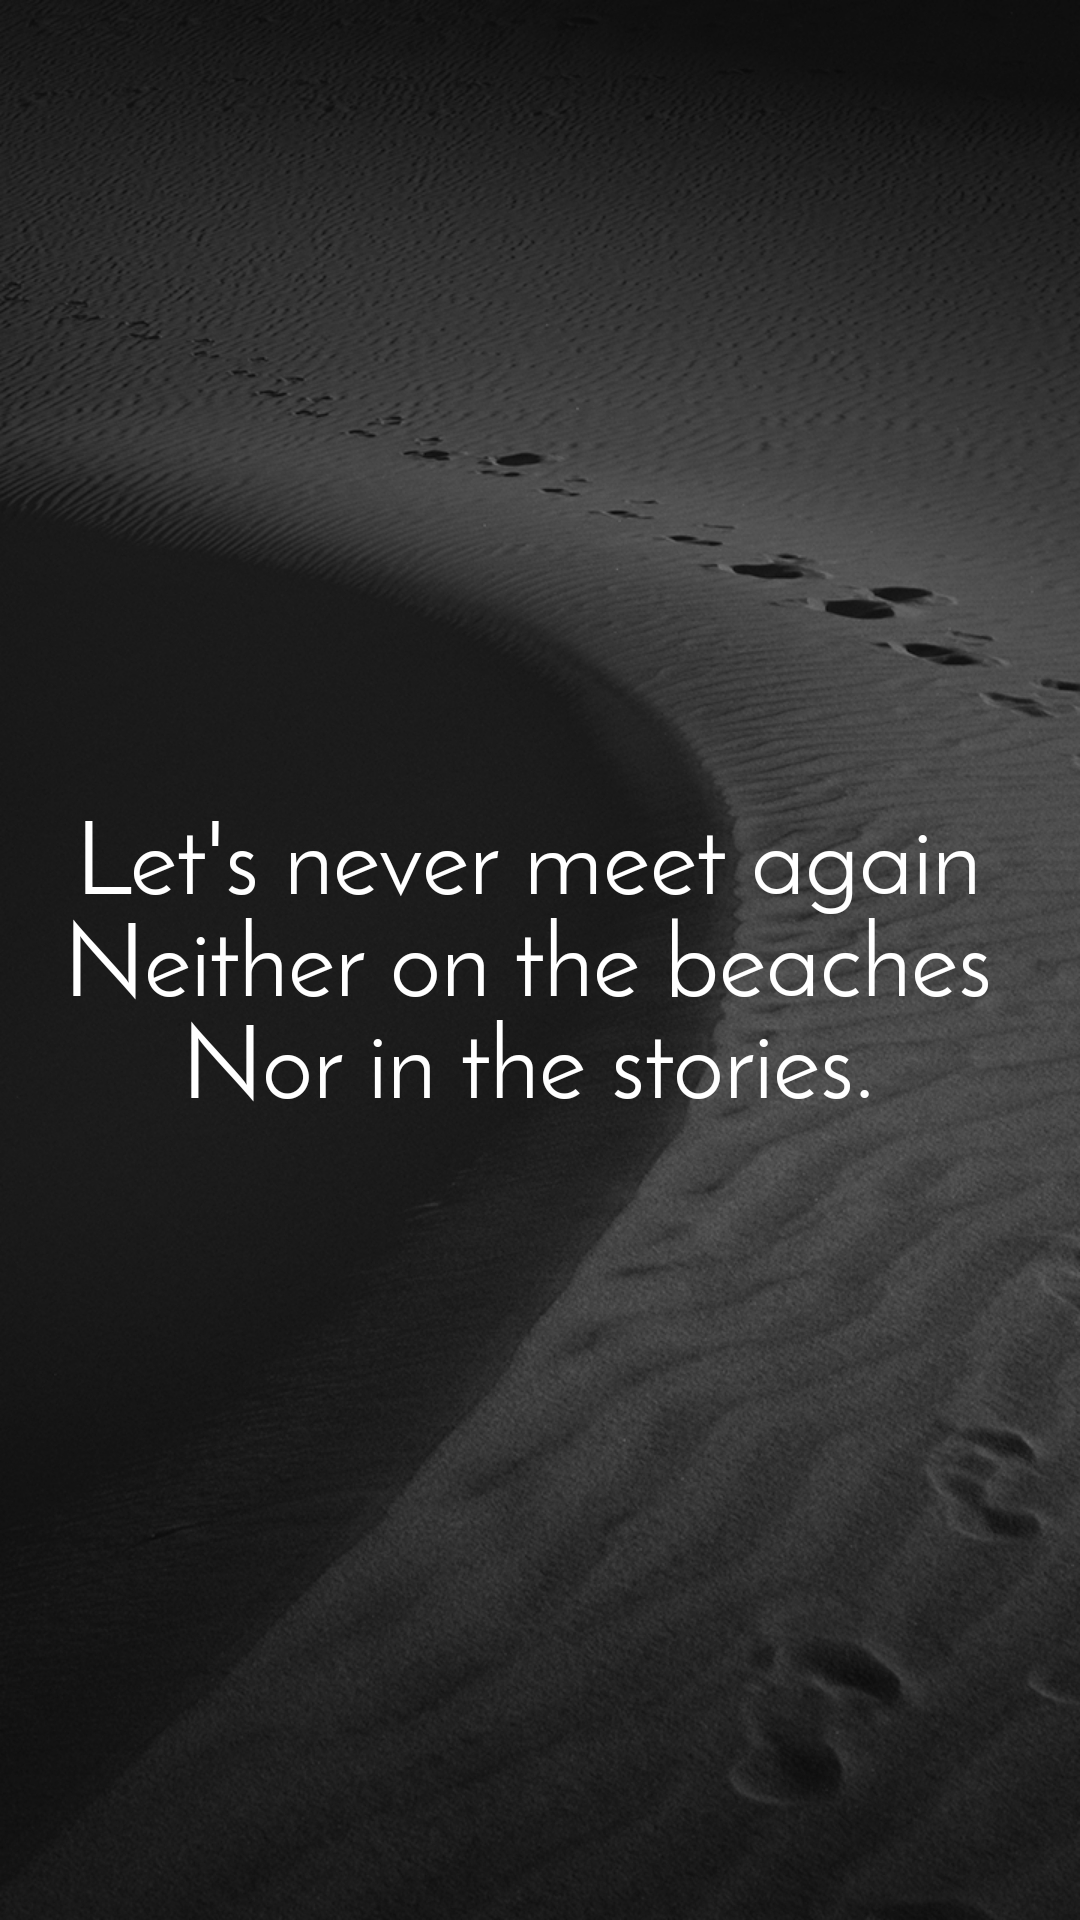 Let's never meet again  Neither on the beaches  Nor in the stories.